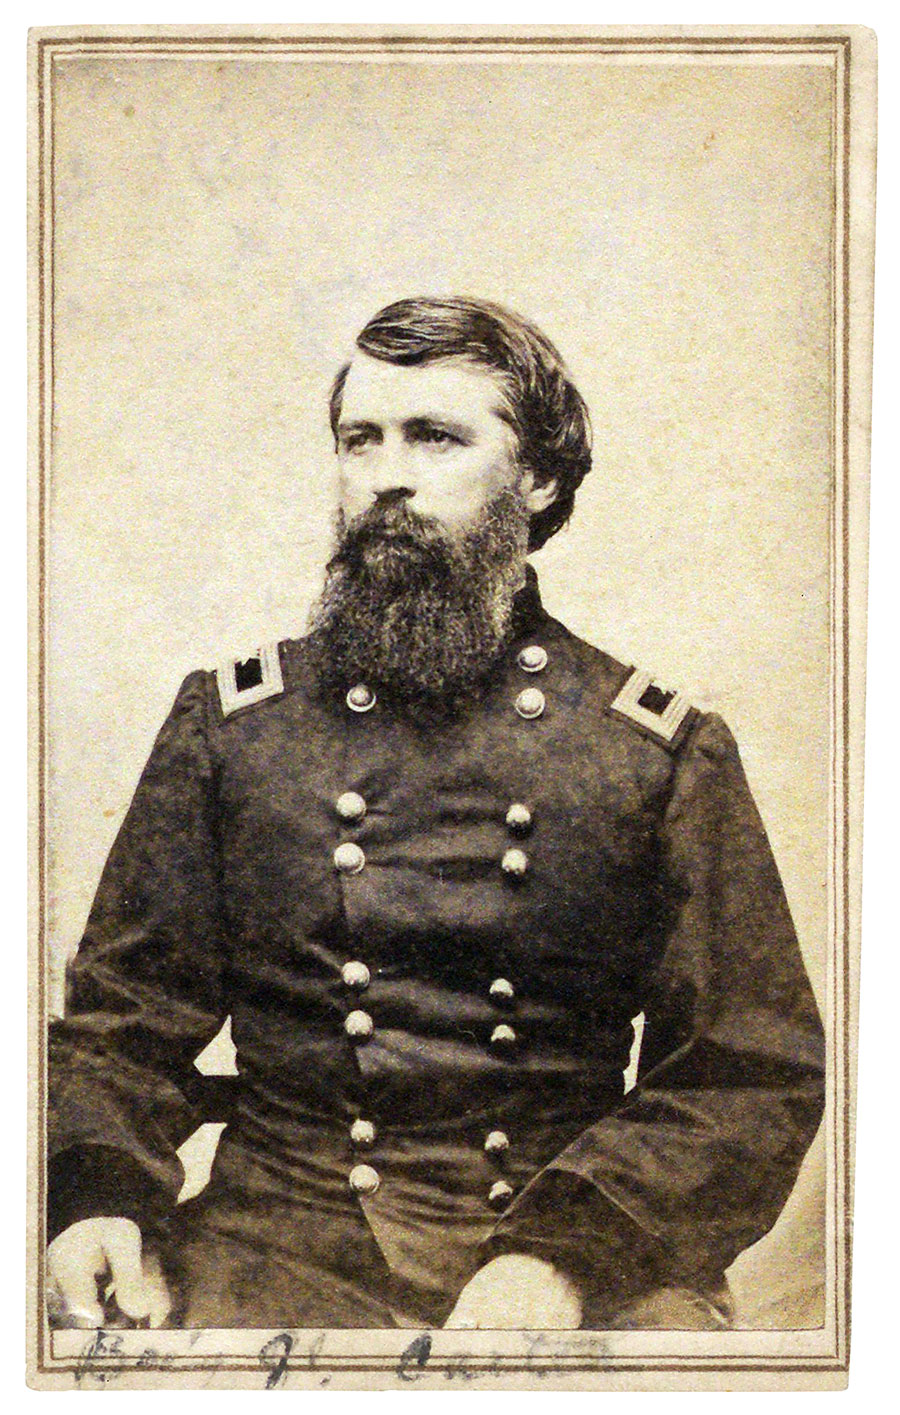 Gen. Carter sat for this carte de visite in Schleier's Knoxville gallery; he signed his name and date, May 25, 1864, on the back. The Gilder Lehrman Institute of American History.